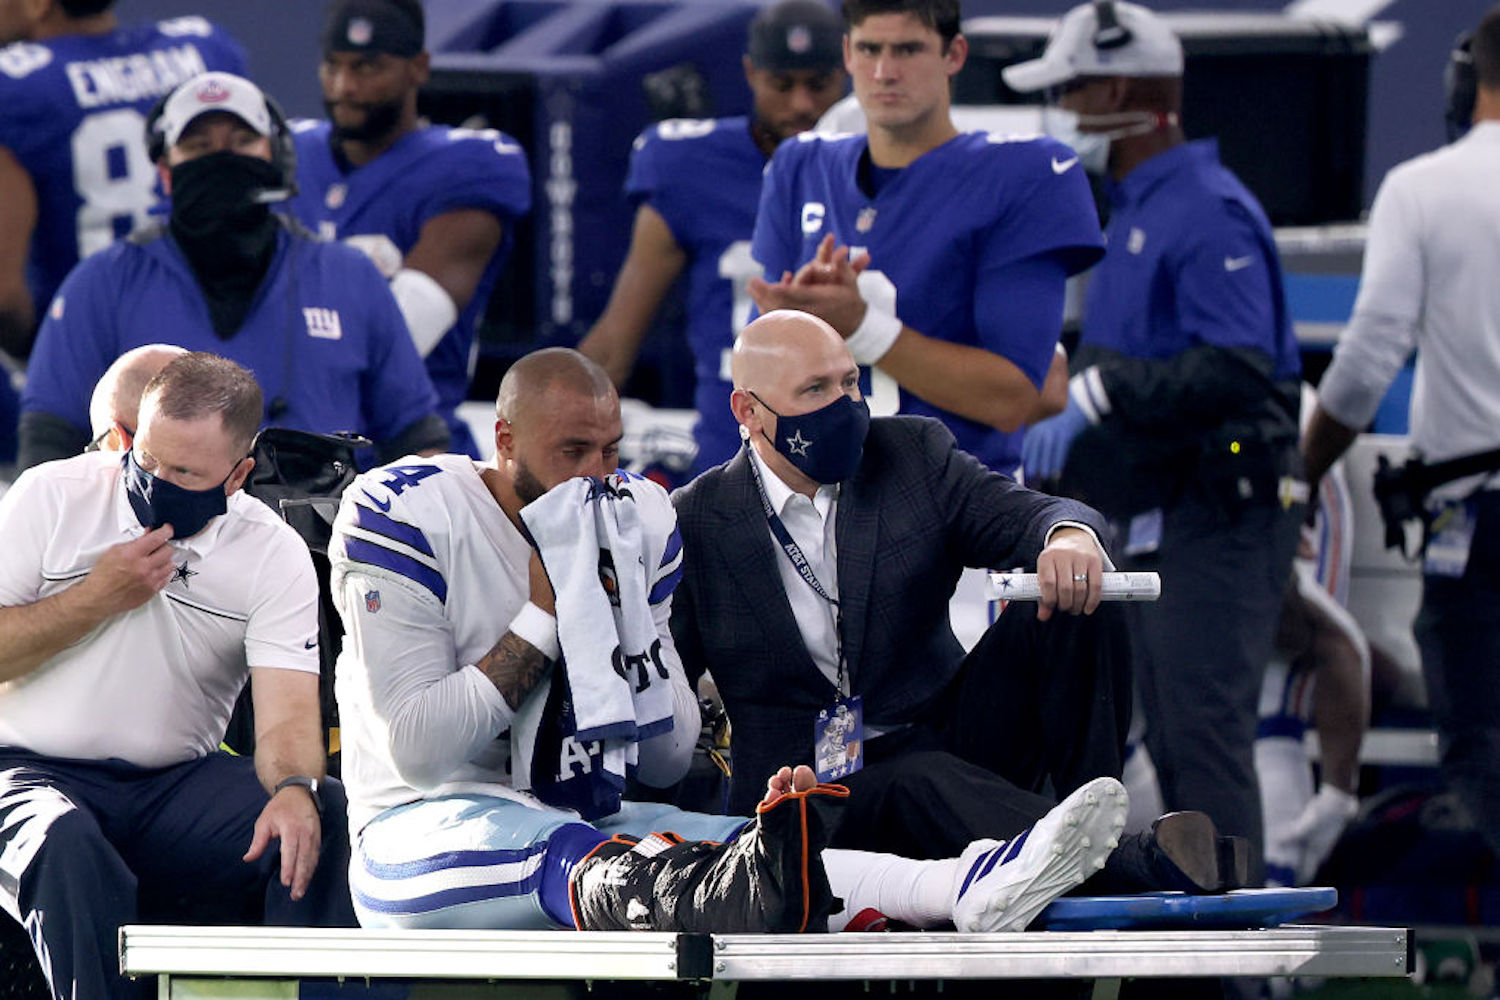 Dak Prescott suffered a gruesome ankle injury on Sunday, so how long will he be out and how have other players fared coming back from the same injury?